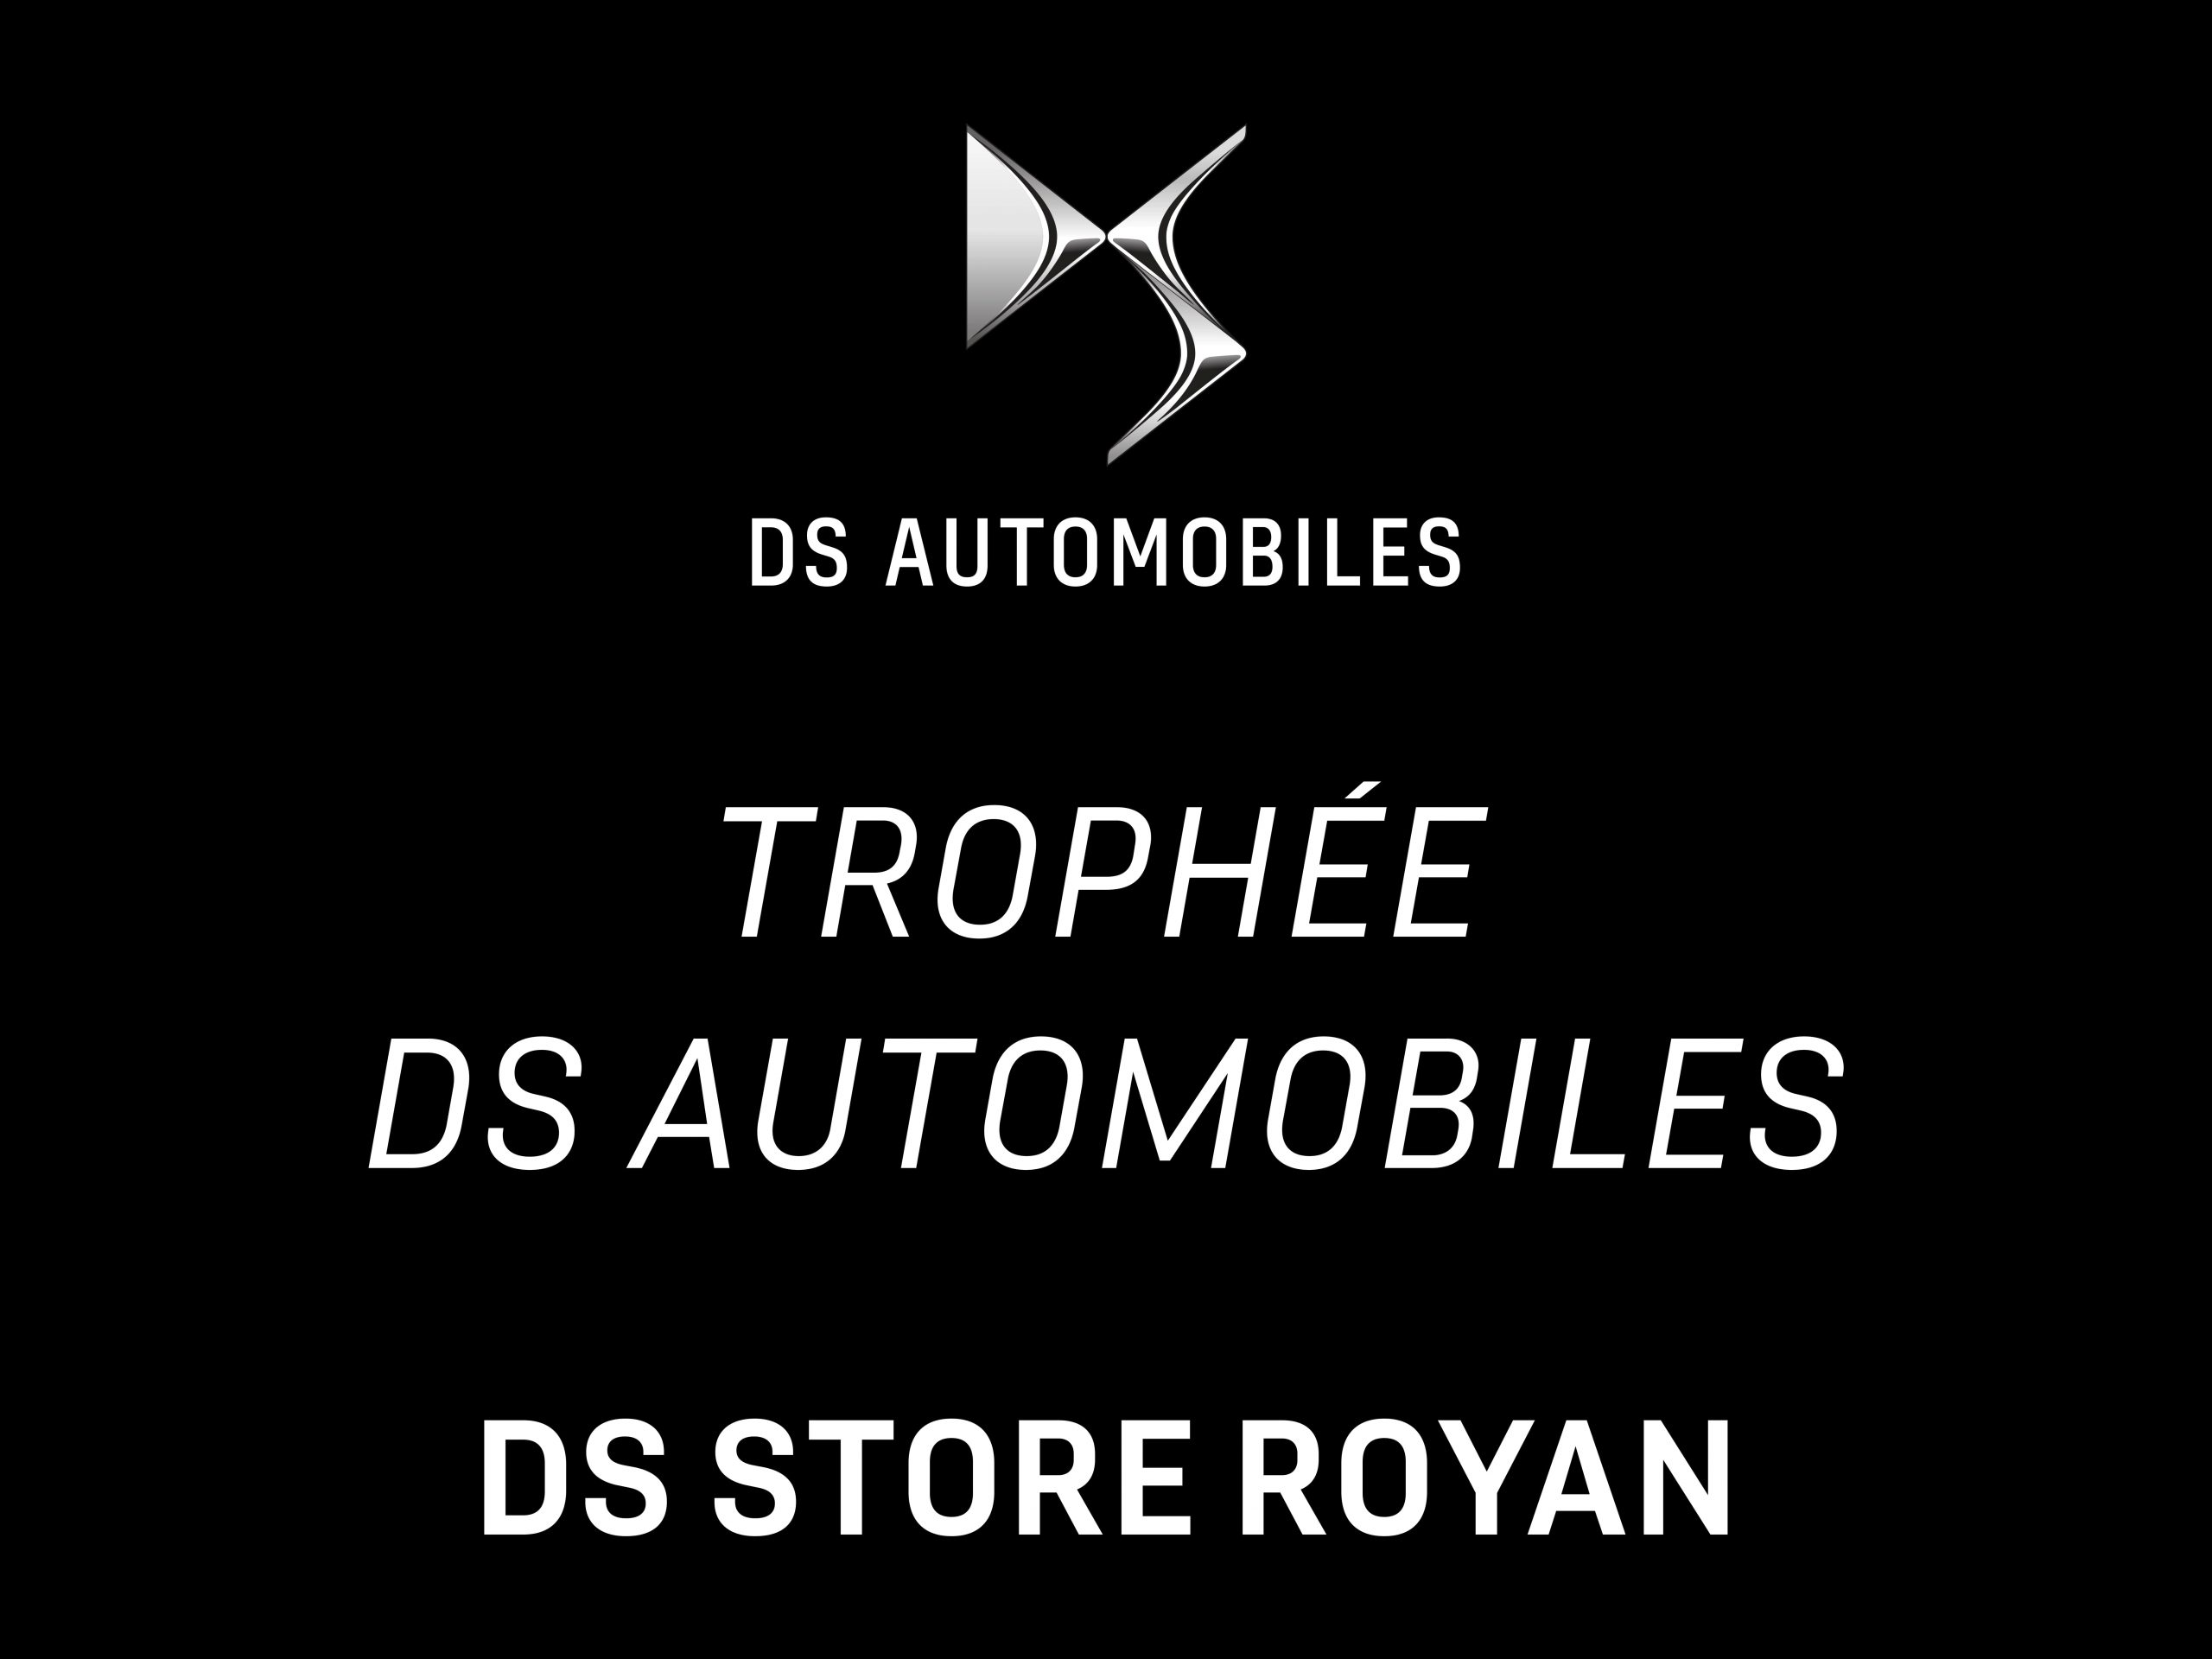 DS STORE ROYAN